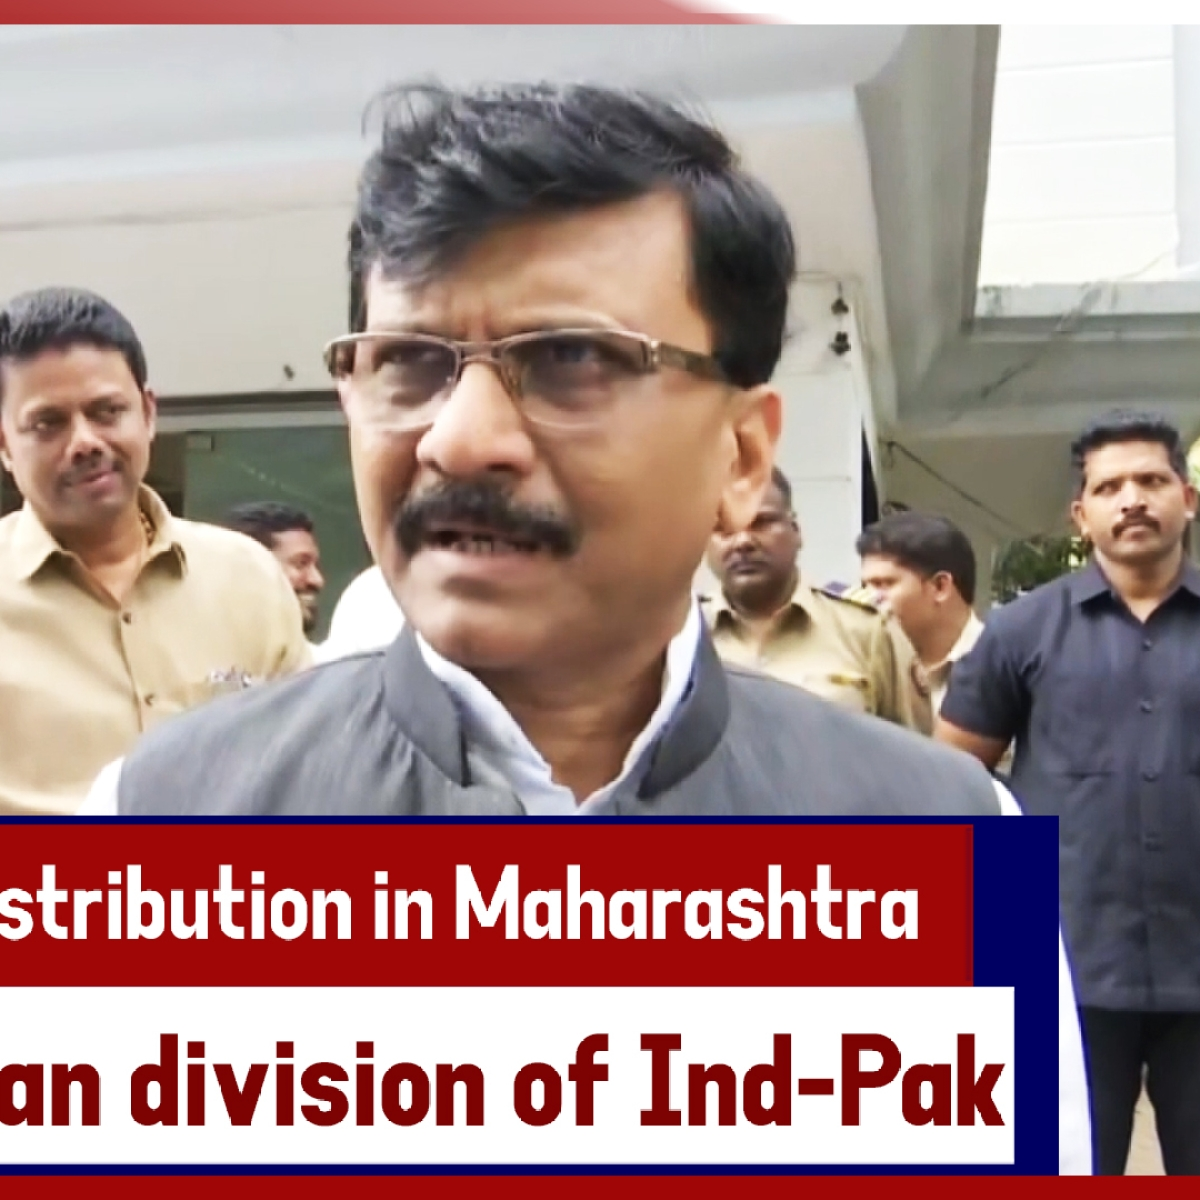 288 Seats Distribution In Maharashtra Is More Frightful Than Division Of Ind-Pak: Sanjay Raut